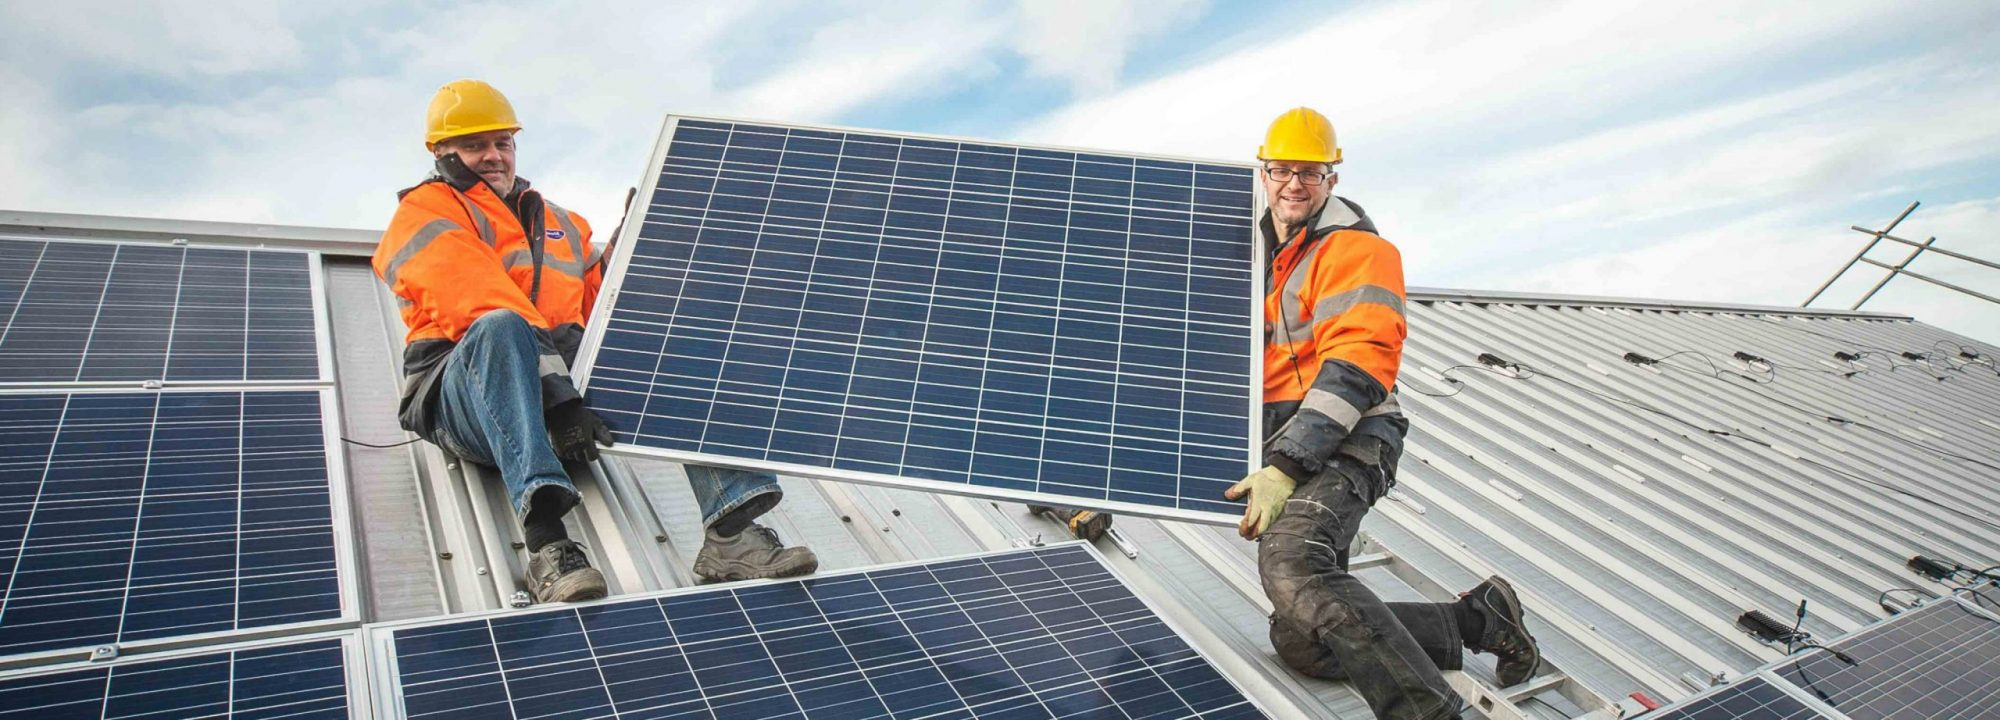 Next Generation fund awards almost £500k to five community energy projects across England